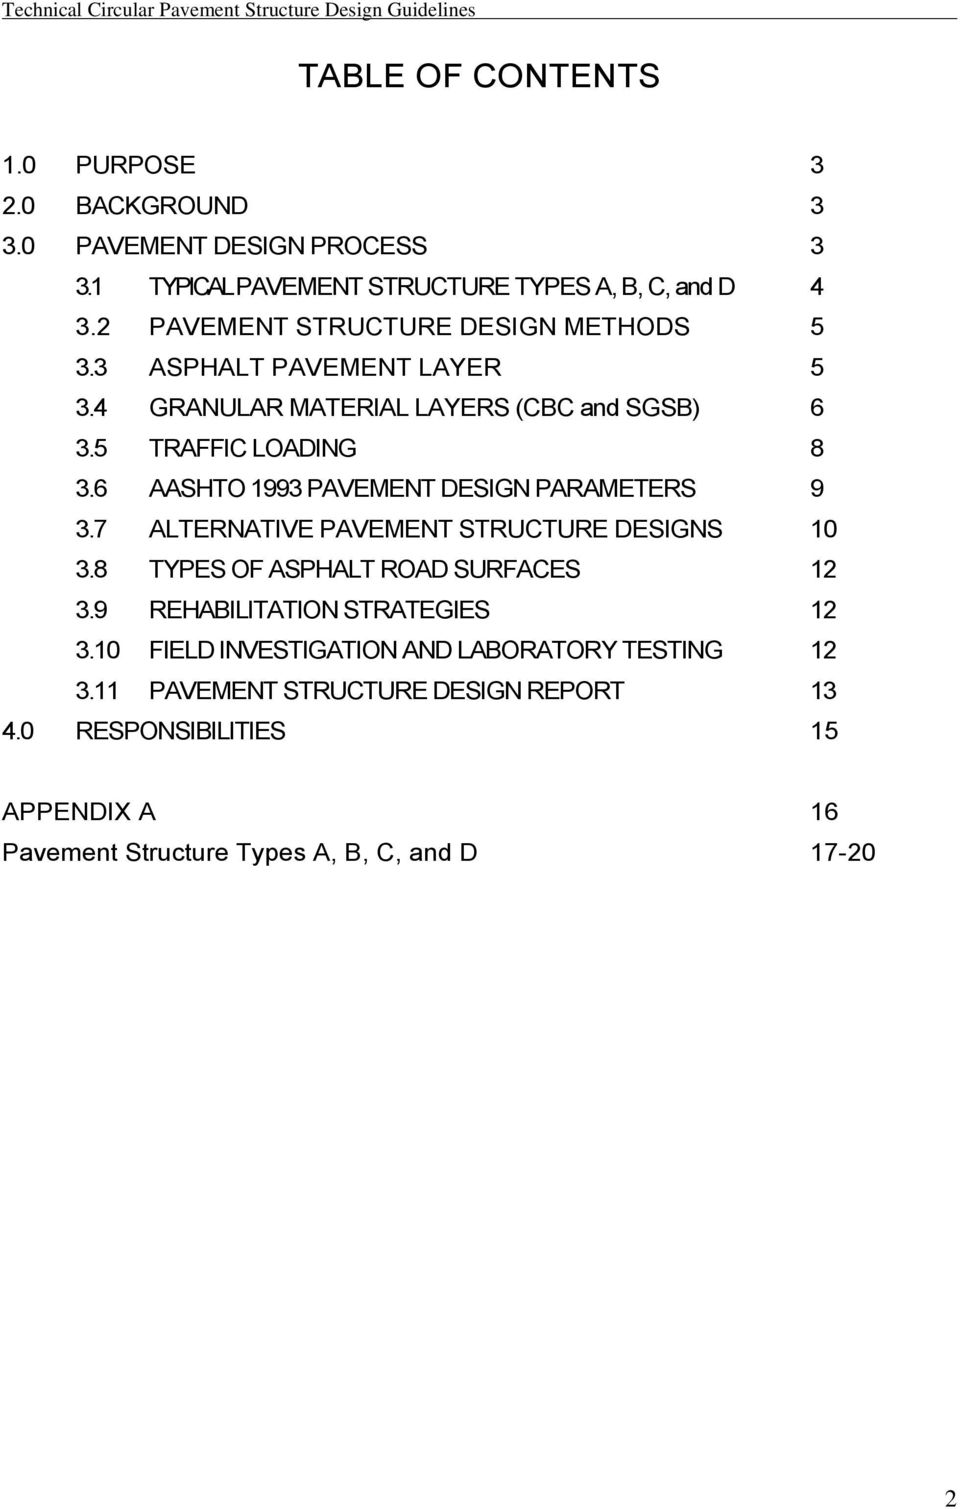 Pavement Structure Design Guidelines Pdf Free Download